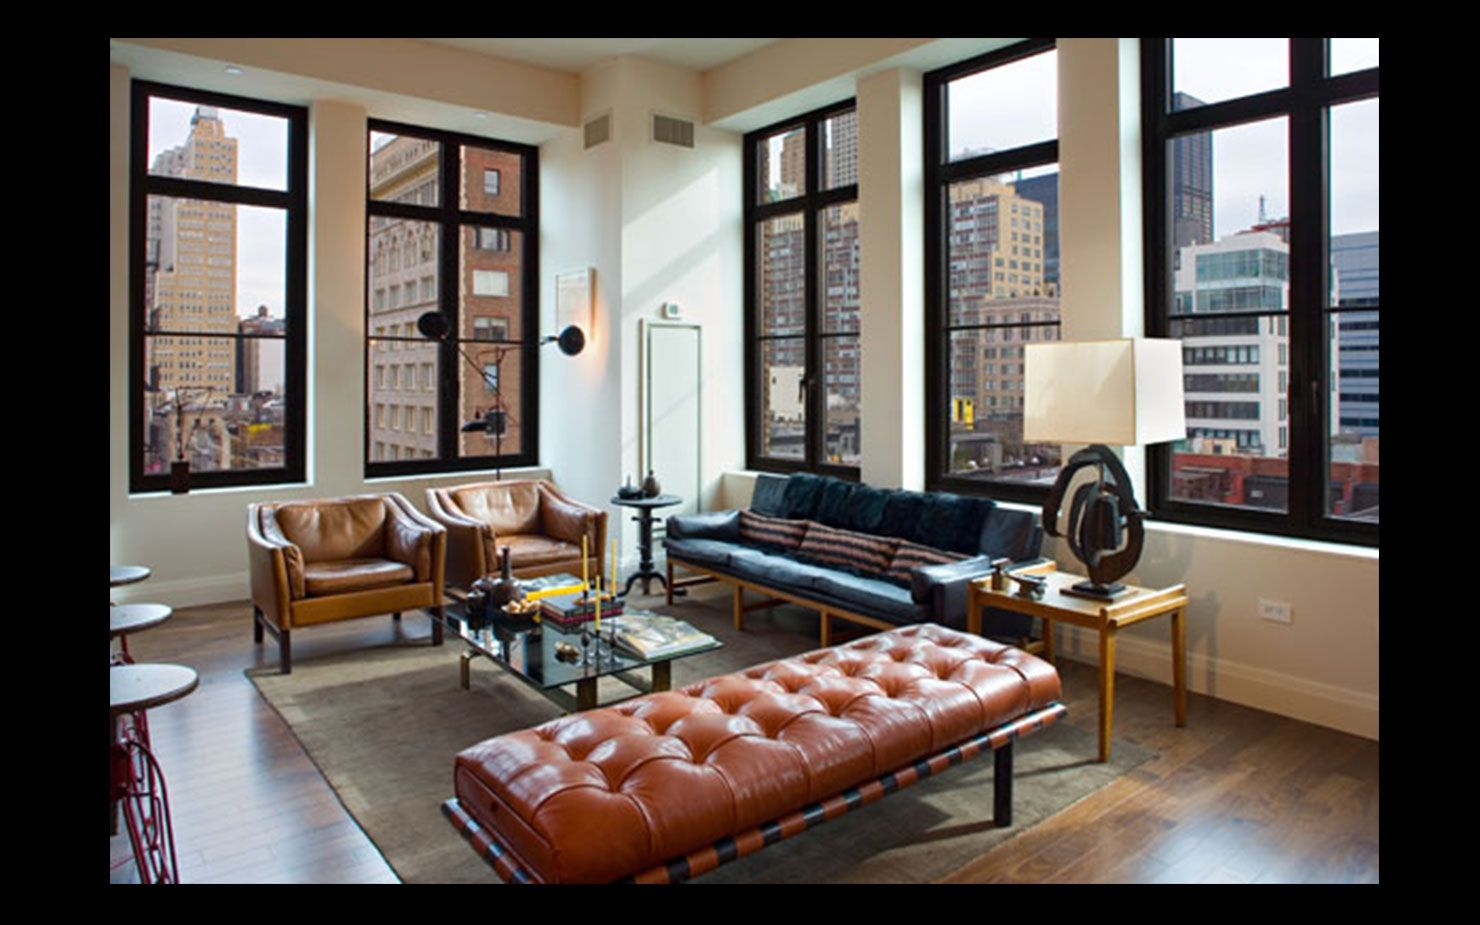 Urban loft style apartment for big family in new york city - Roman And Williams Interior Design Masculine Style Bachelor Pad New York City